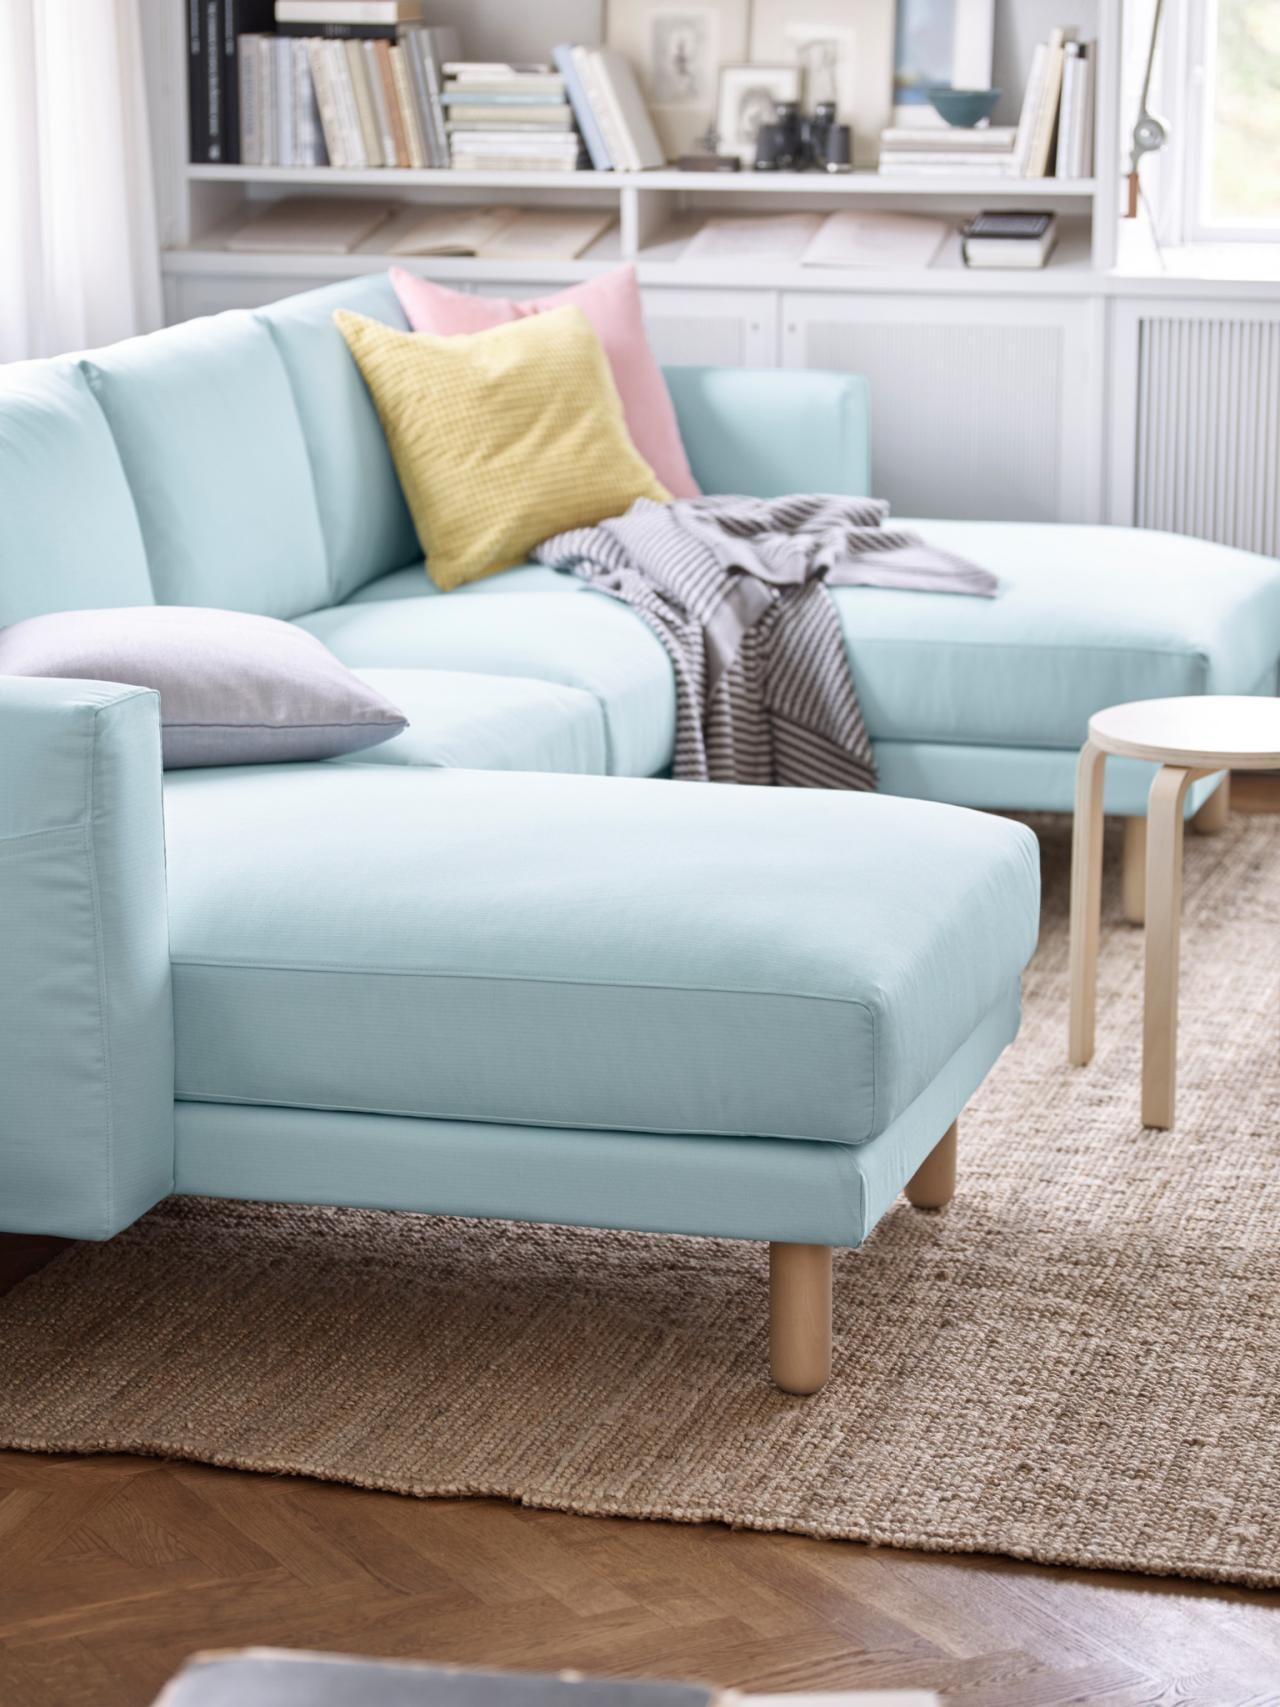 5 Apartment Sized Sofas That Are Lifesavers | Hgtv's Decorating With Apartment Sectional Sofa With Chaise (Image 1 of 15)